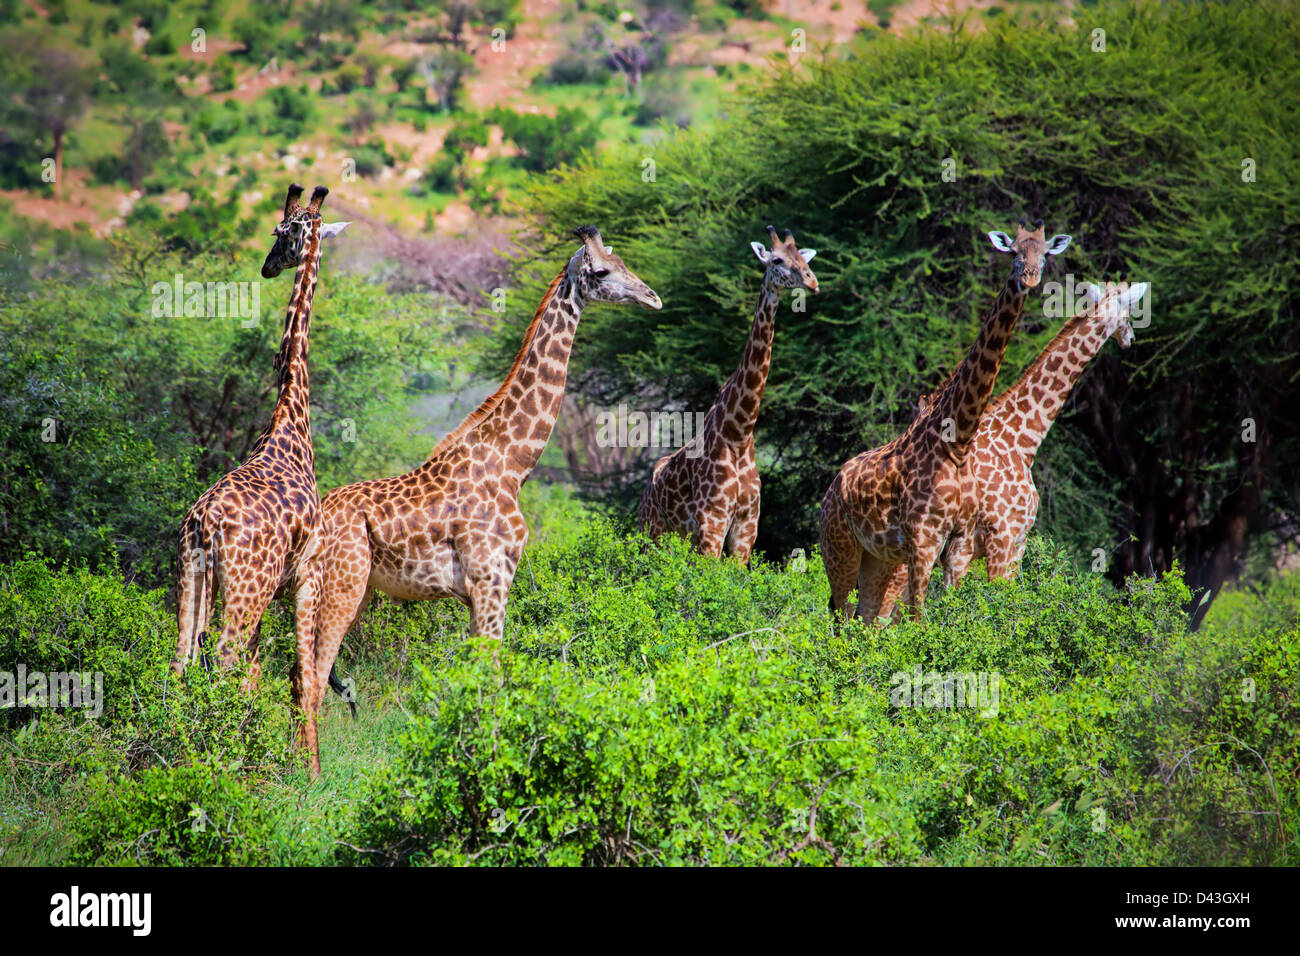 Group of giraffes in the bush in Tsavo West National Park, Kenya, Africa - Stock Image